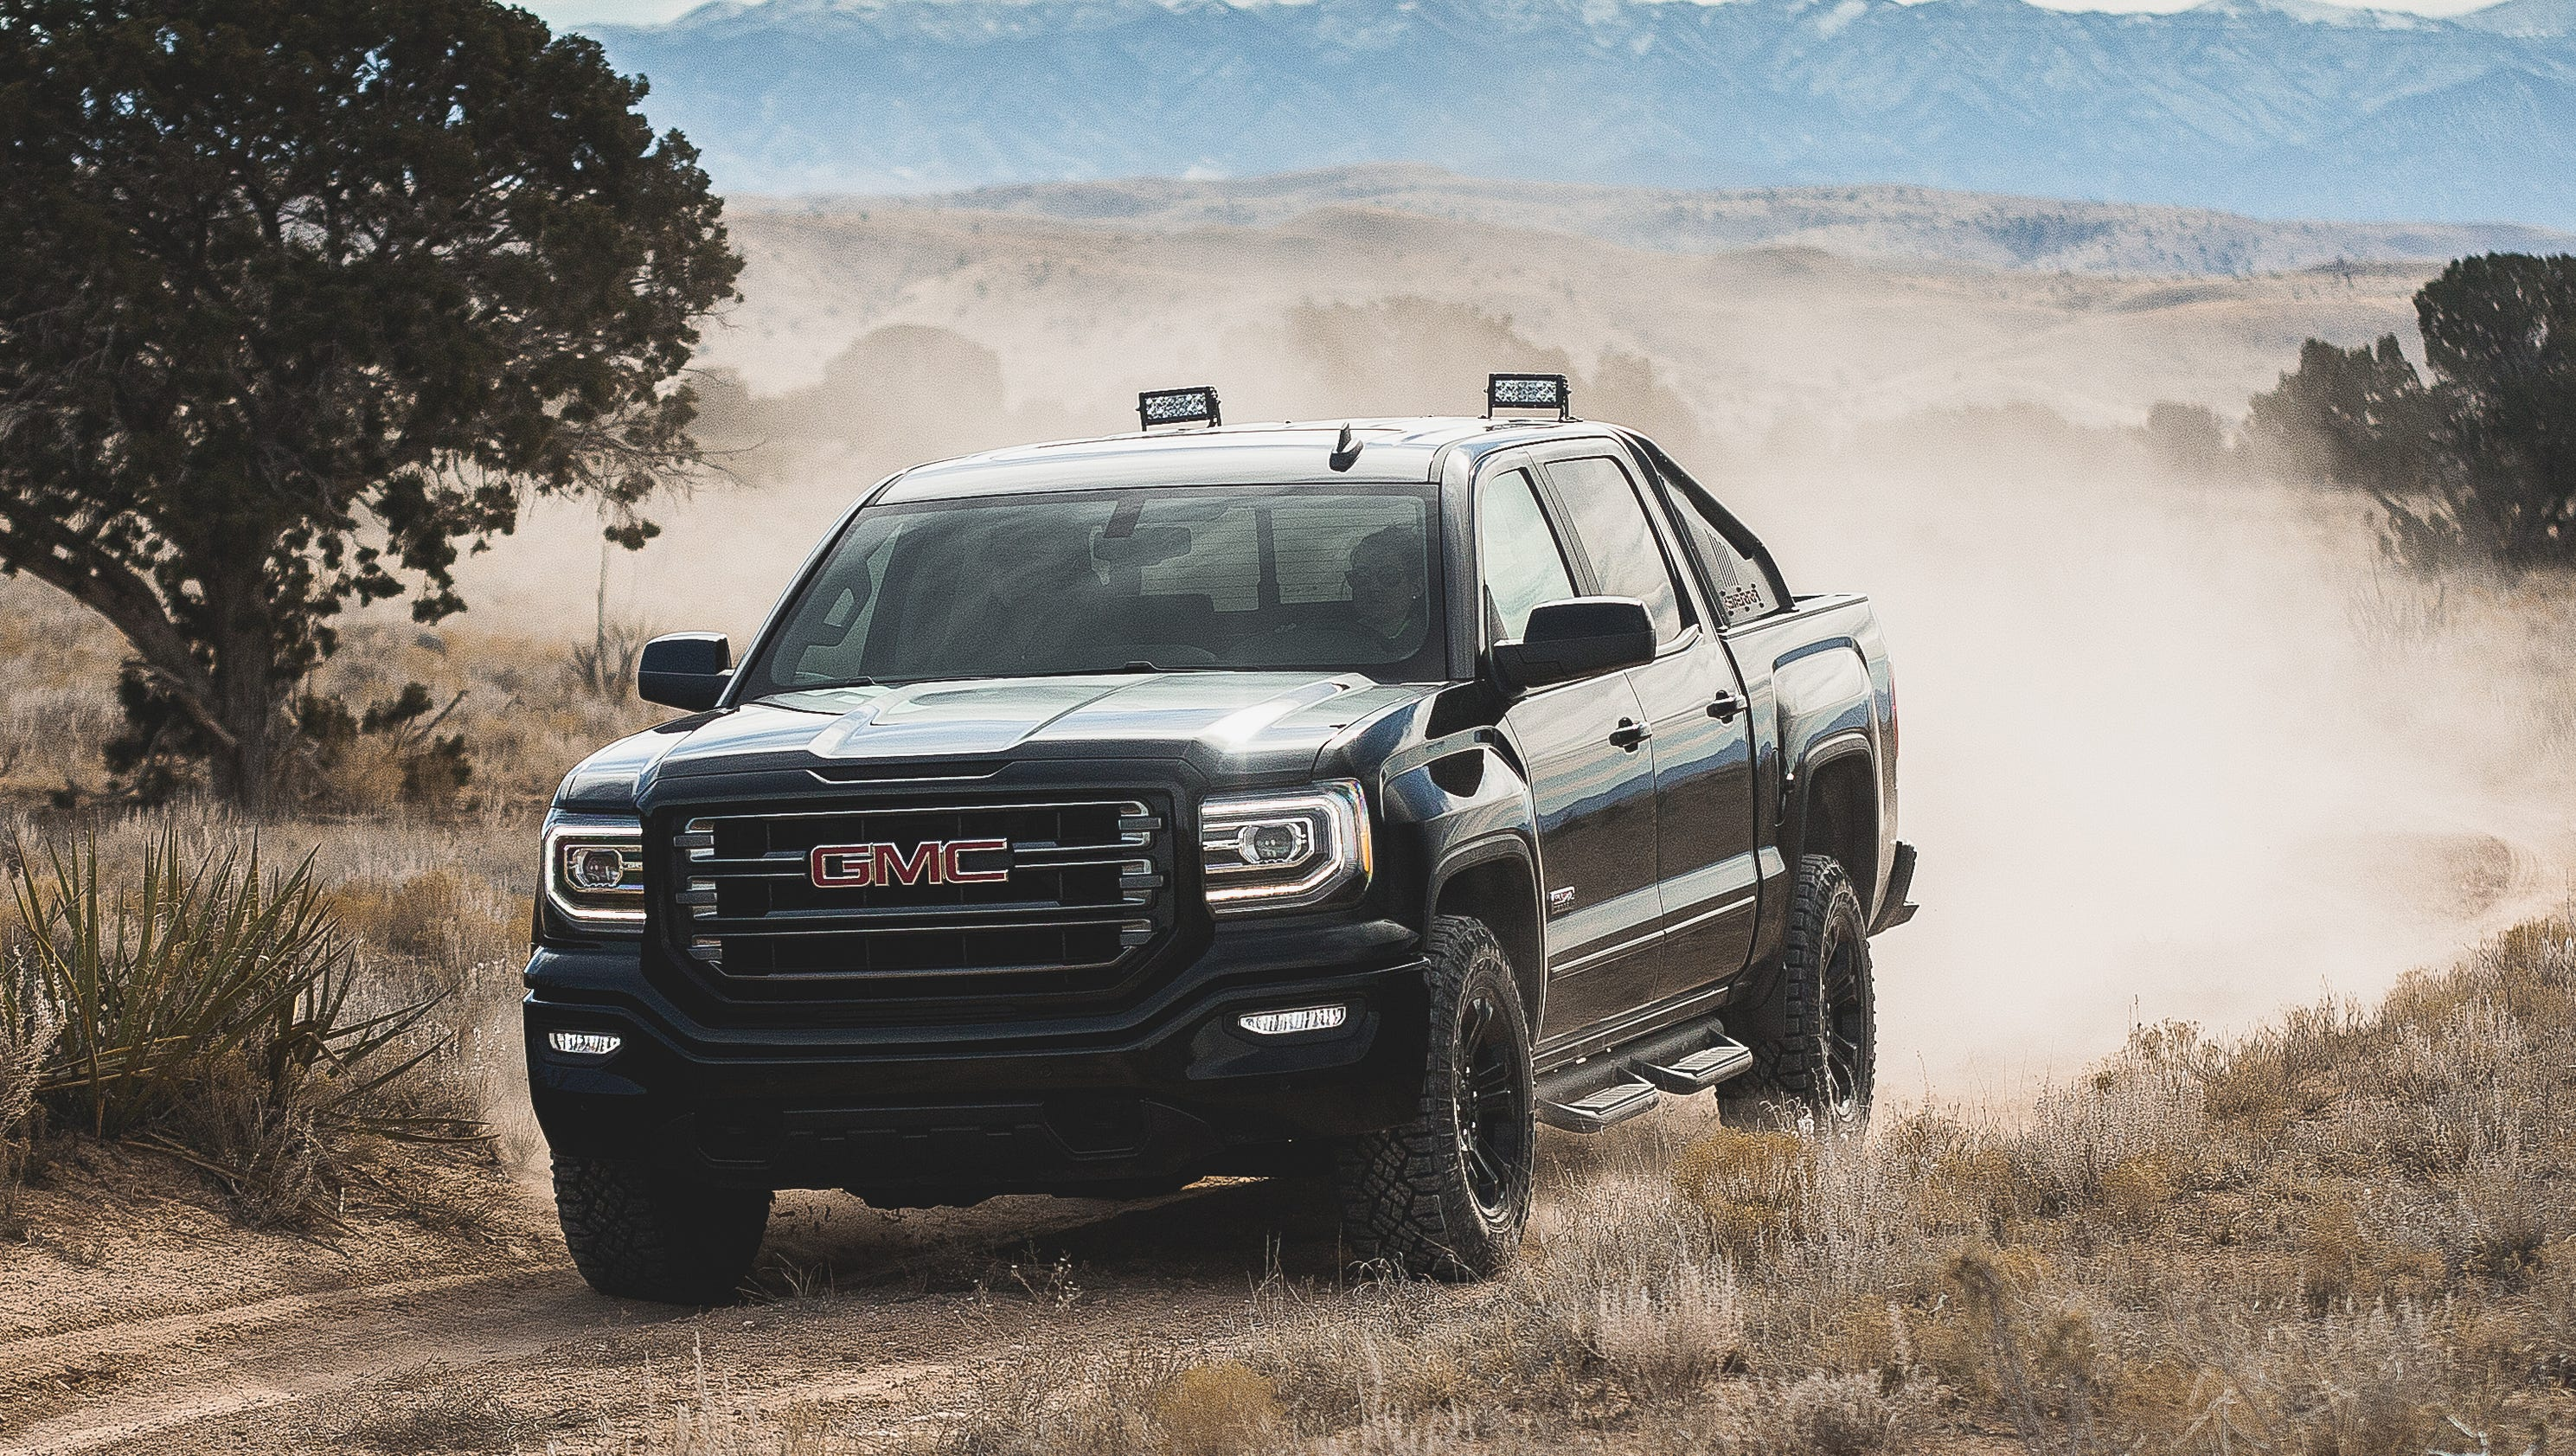 box base photos features truck cab photo ft pickup reviews gmc price wb sierra in regular